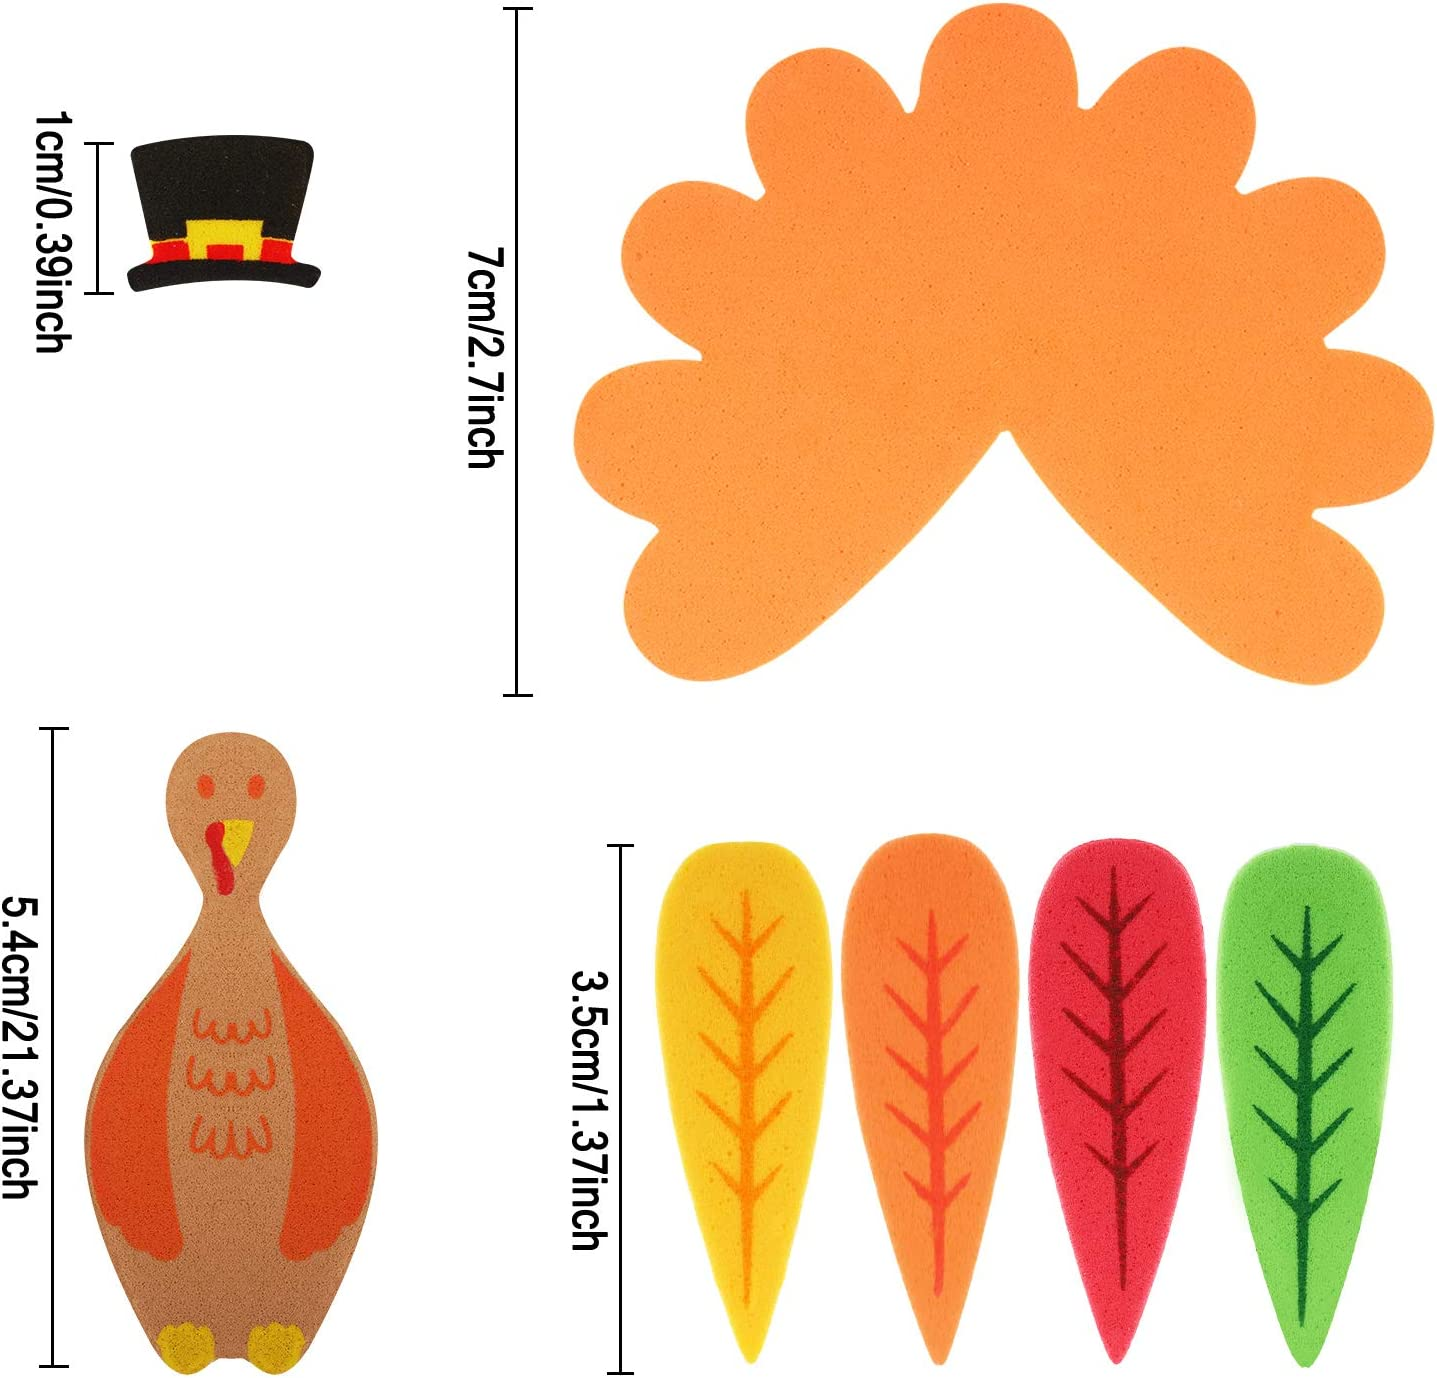 Make Up To 24 Turkeys 264 Pieces Thanksgiving Turkey Craft Kit DIY Foam Turkey Thanksgiving Party Game School Activities for Kids and Adults